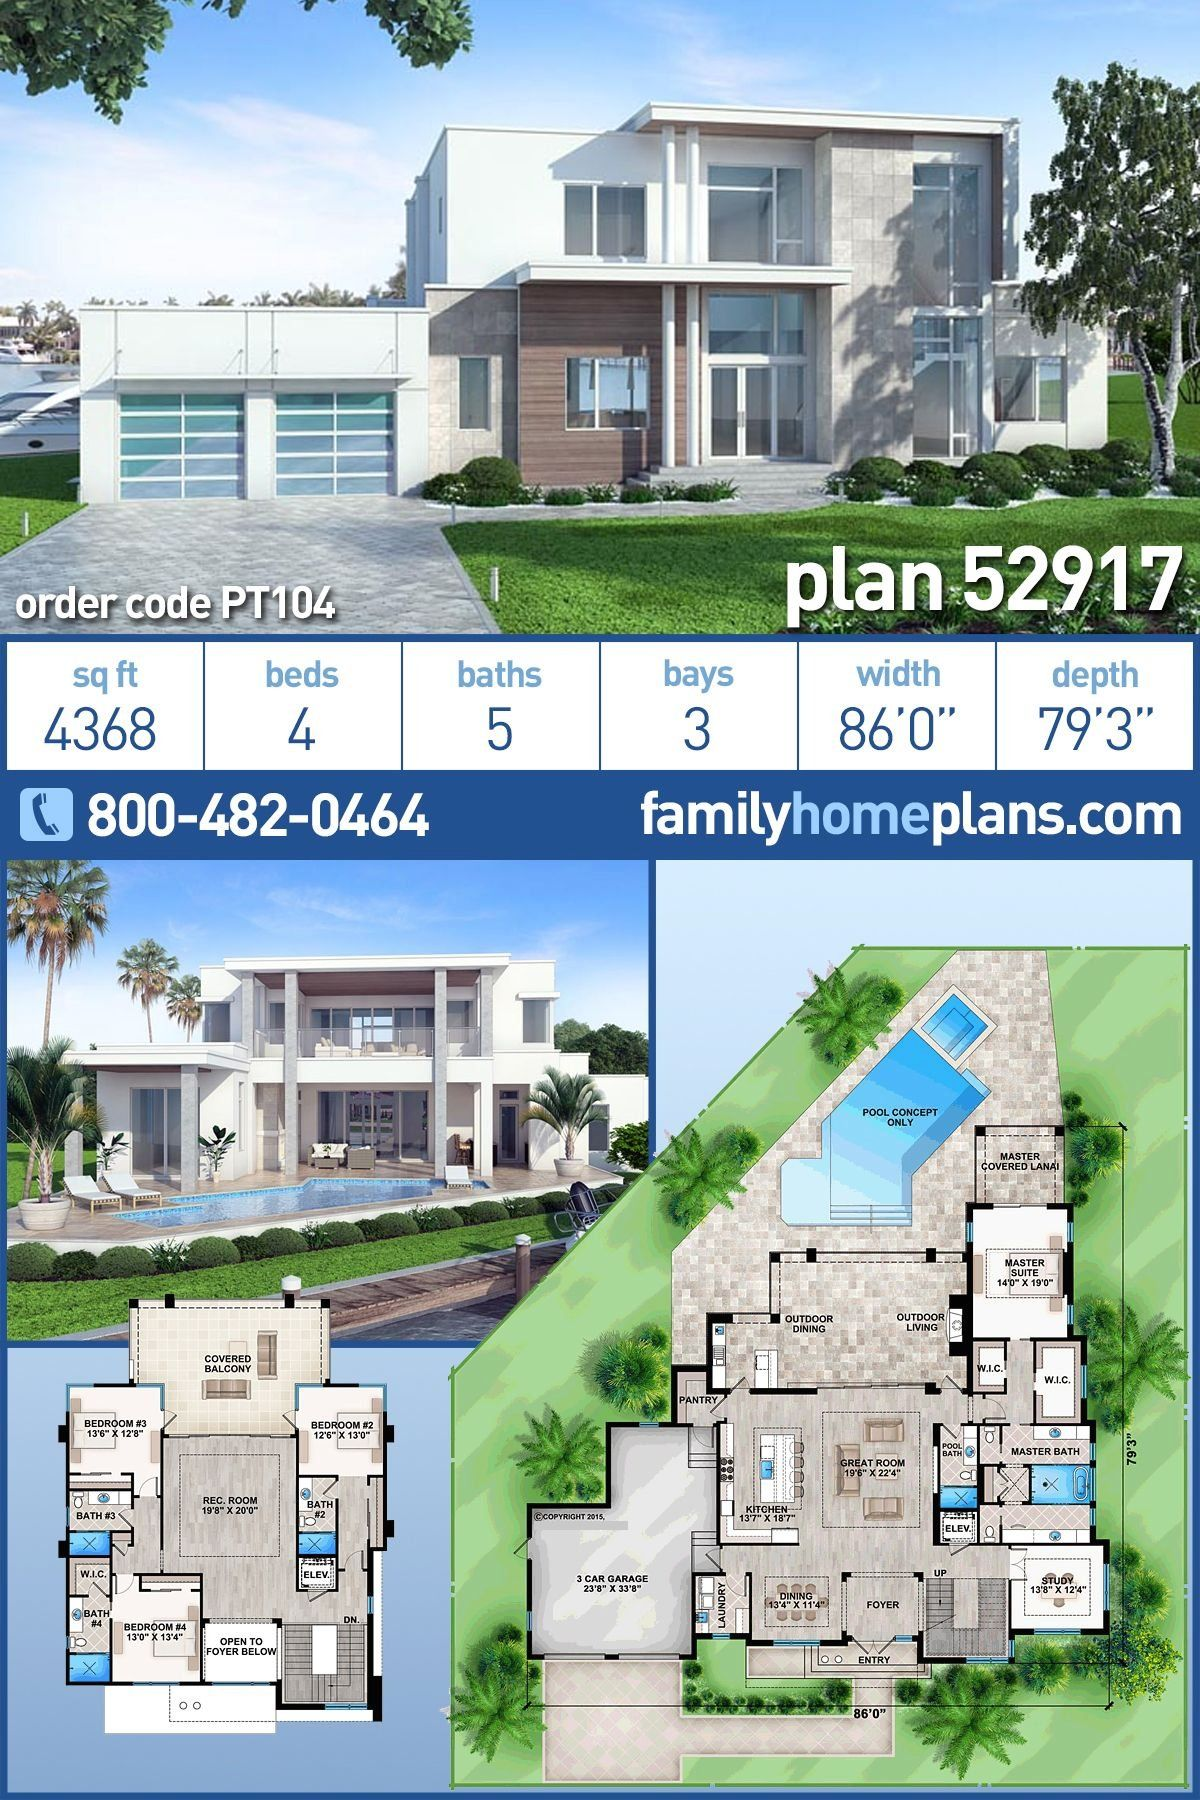 Luxury Modern House Floor Plan Or Contemporary Home Design 4 Bedrooms 5 Bathrooms Modern Style House Plans Modern House Floor Plans Contemporary House Plans